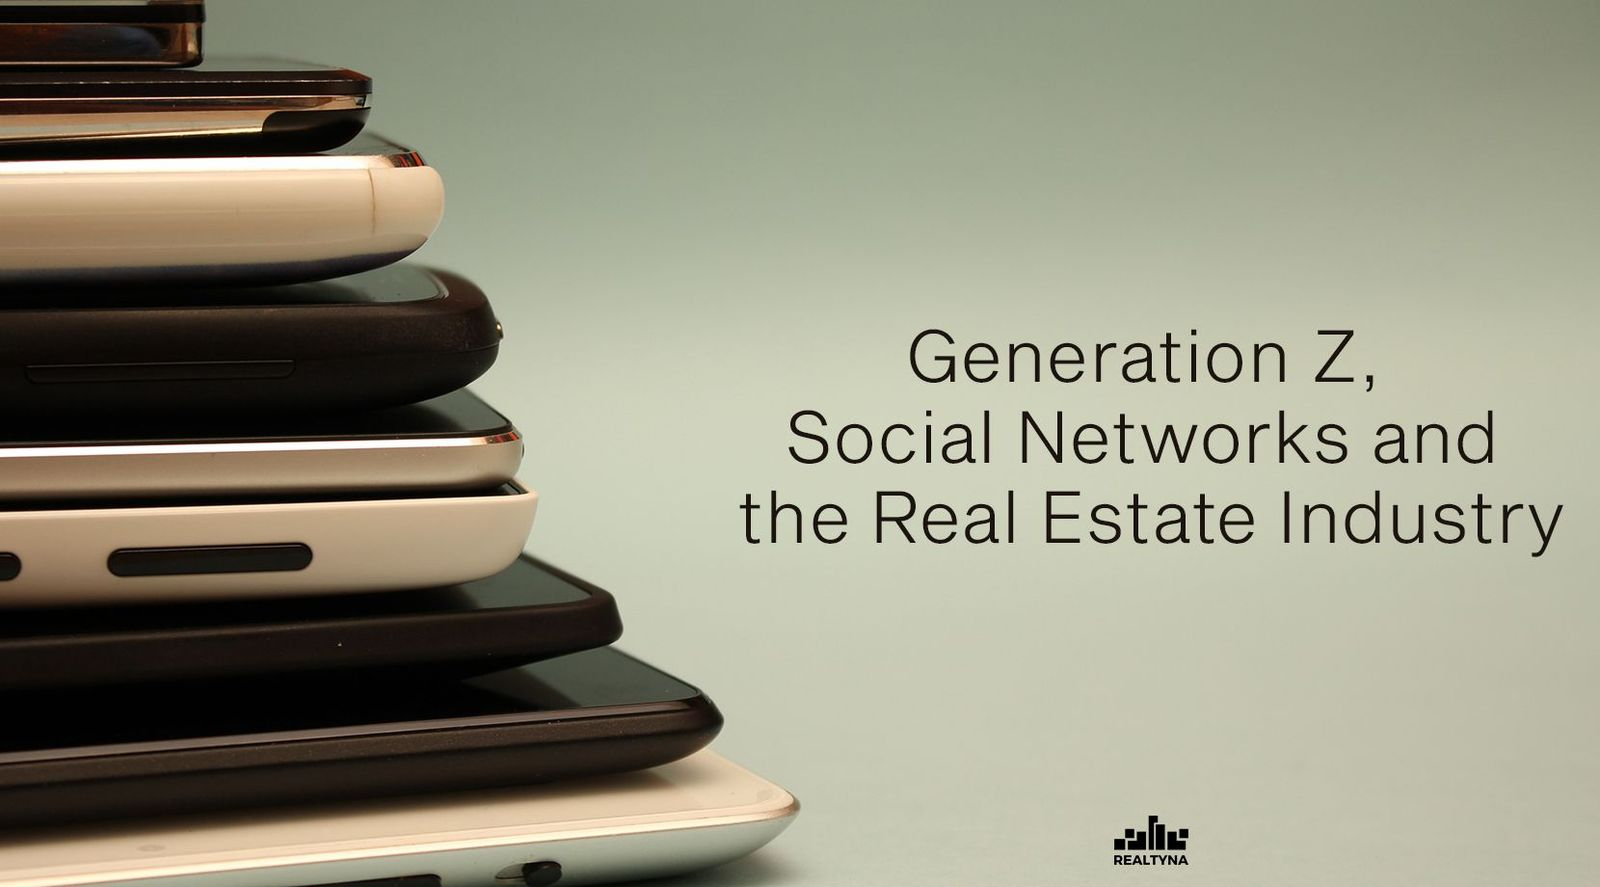 Generation Z, Social Networks and the Real Estate Industry